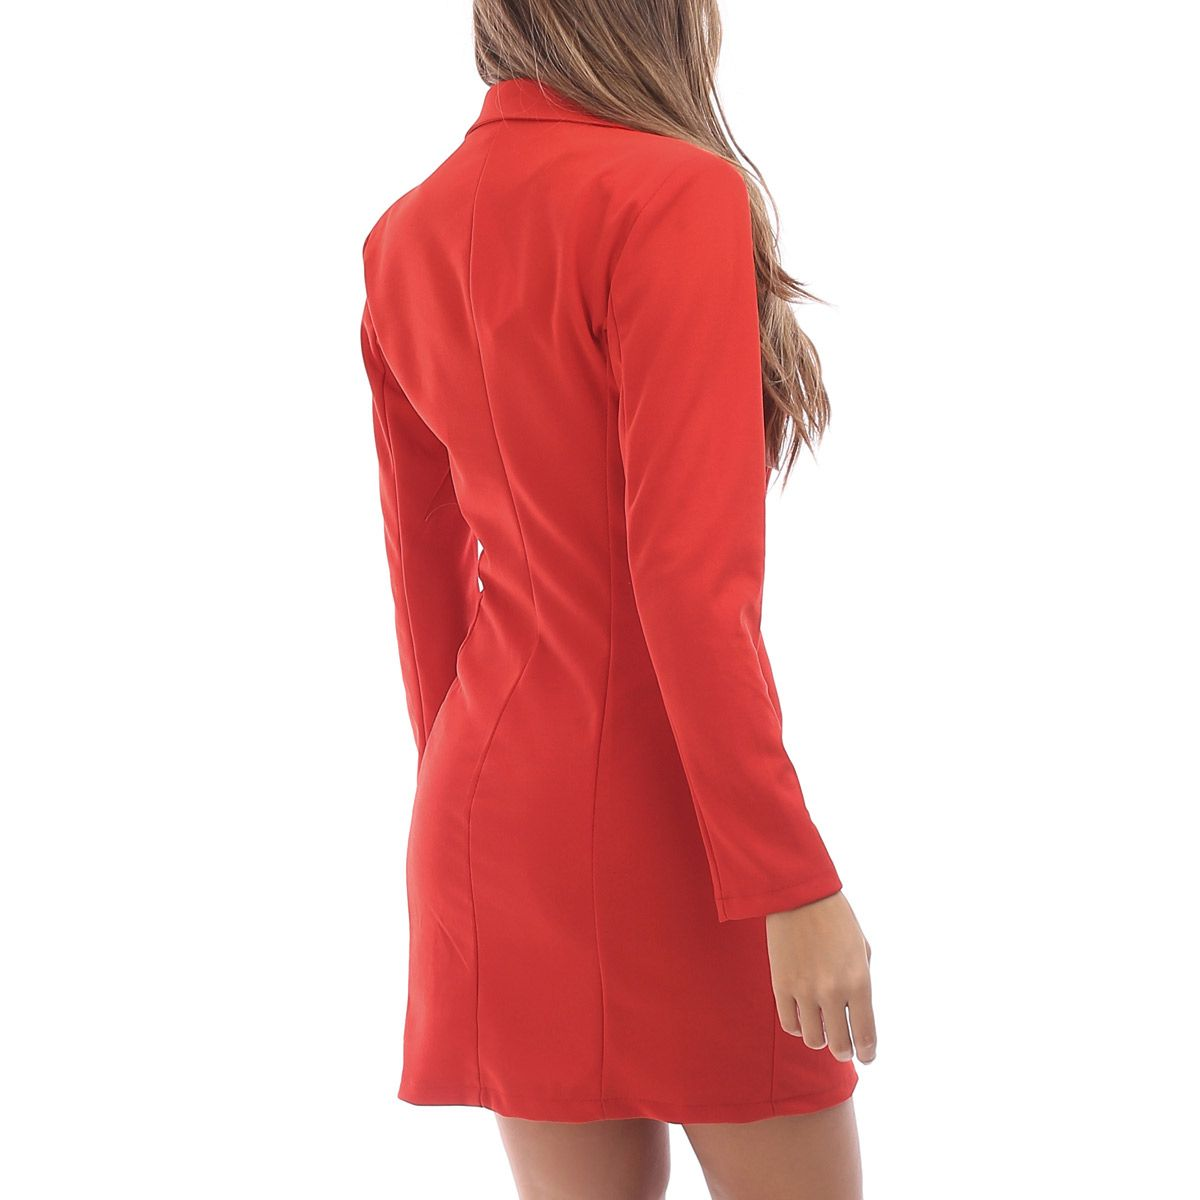 Robe rouge effet blazer avec boutons